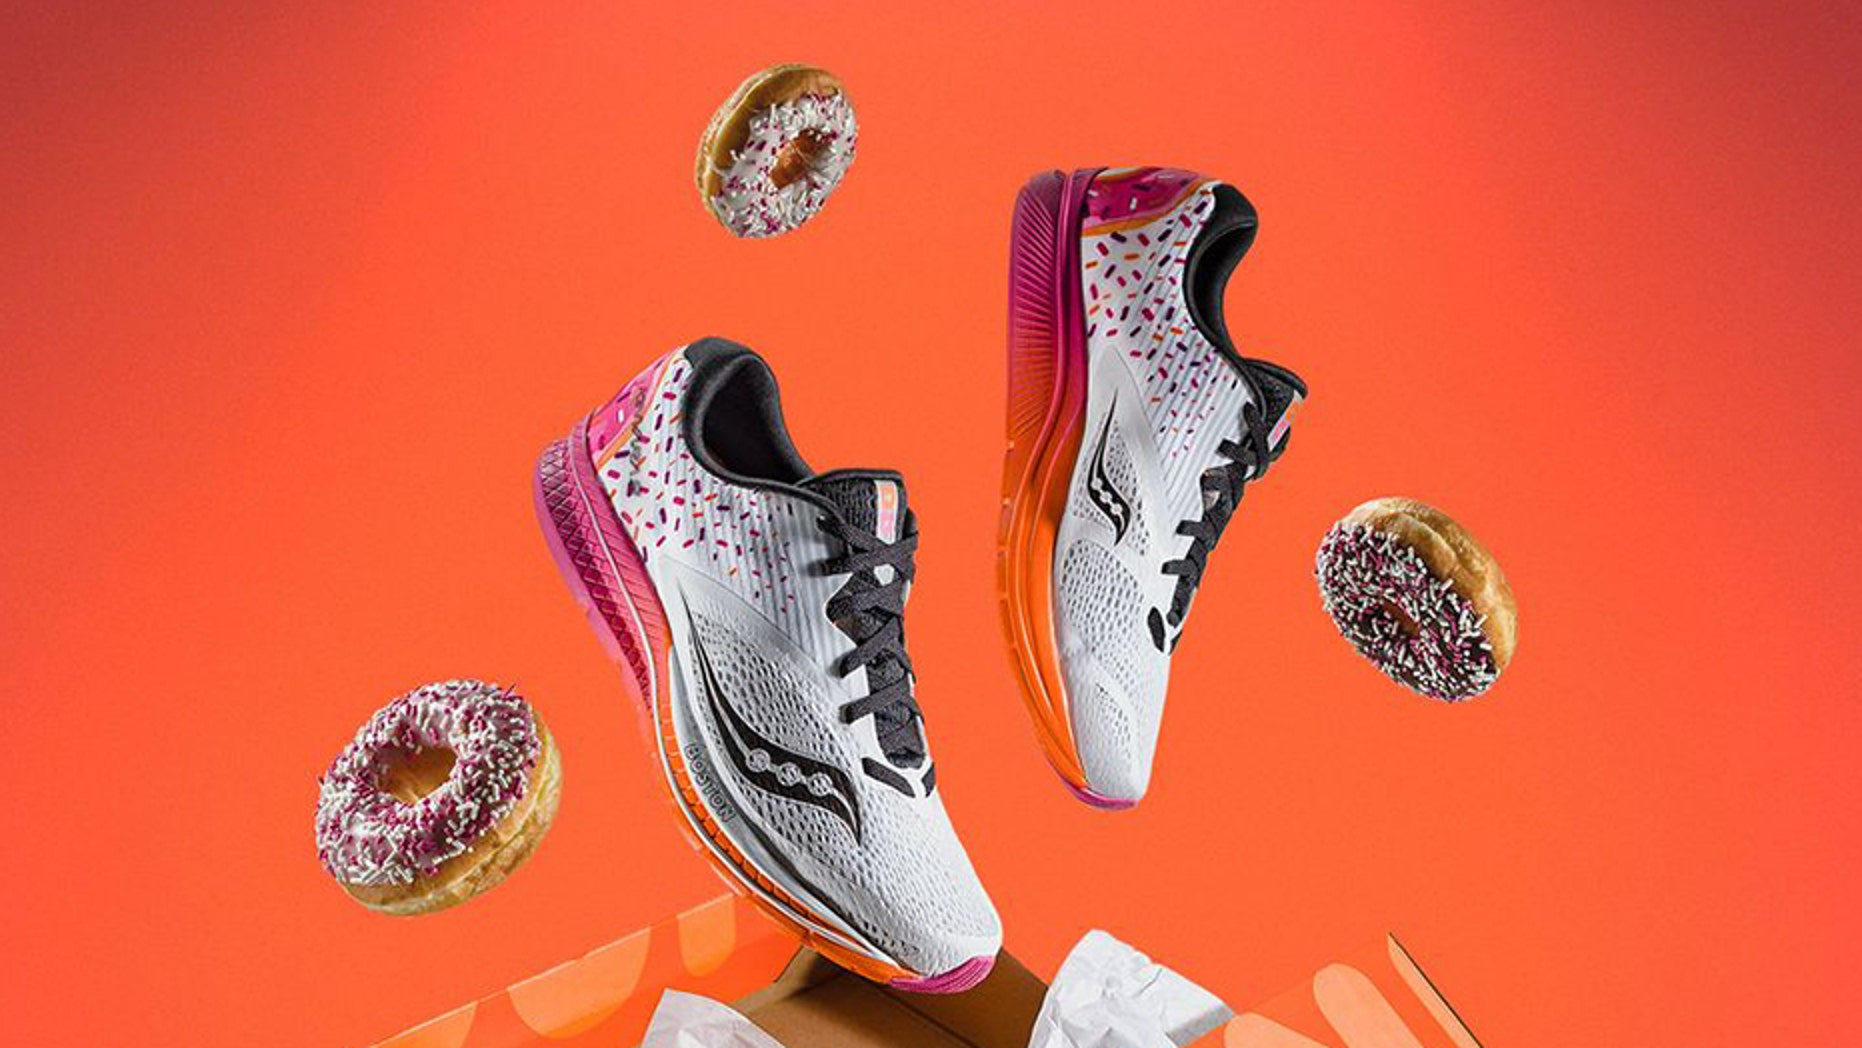 The Saucony X Dunkin' Kinvara 9 is the first-ever footwear collaboration between Saucony, which is celebrating its 120th anniversary this year, and the doughnut super-chain.